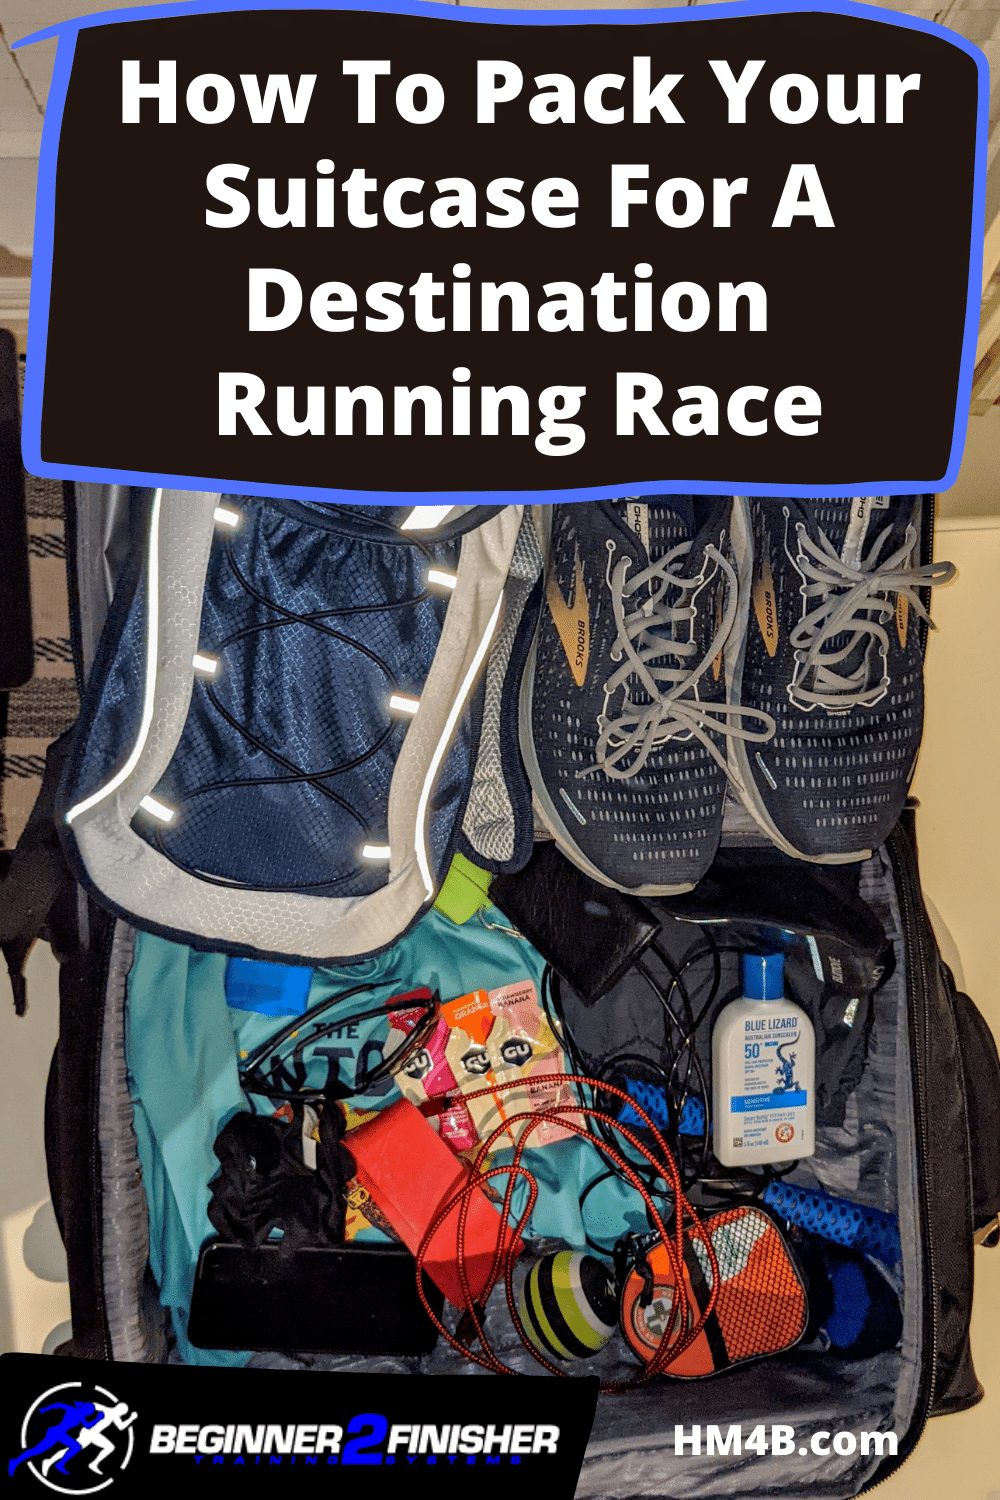 How To Pack Your Suitcase For A Destination Running Race!